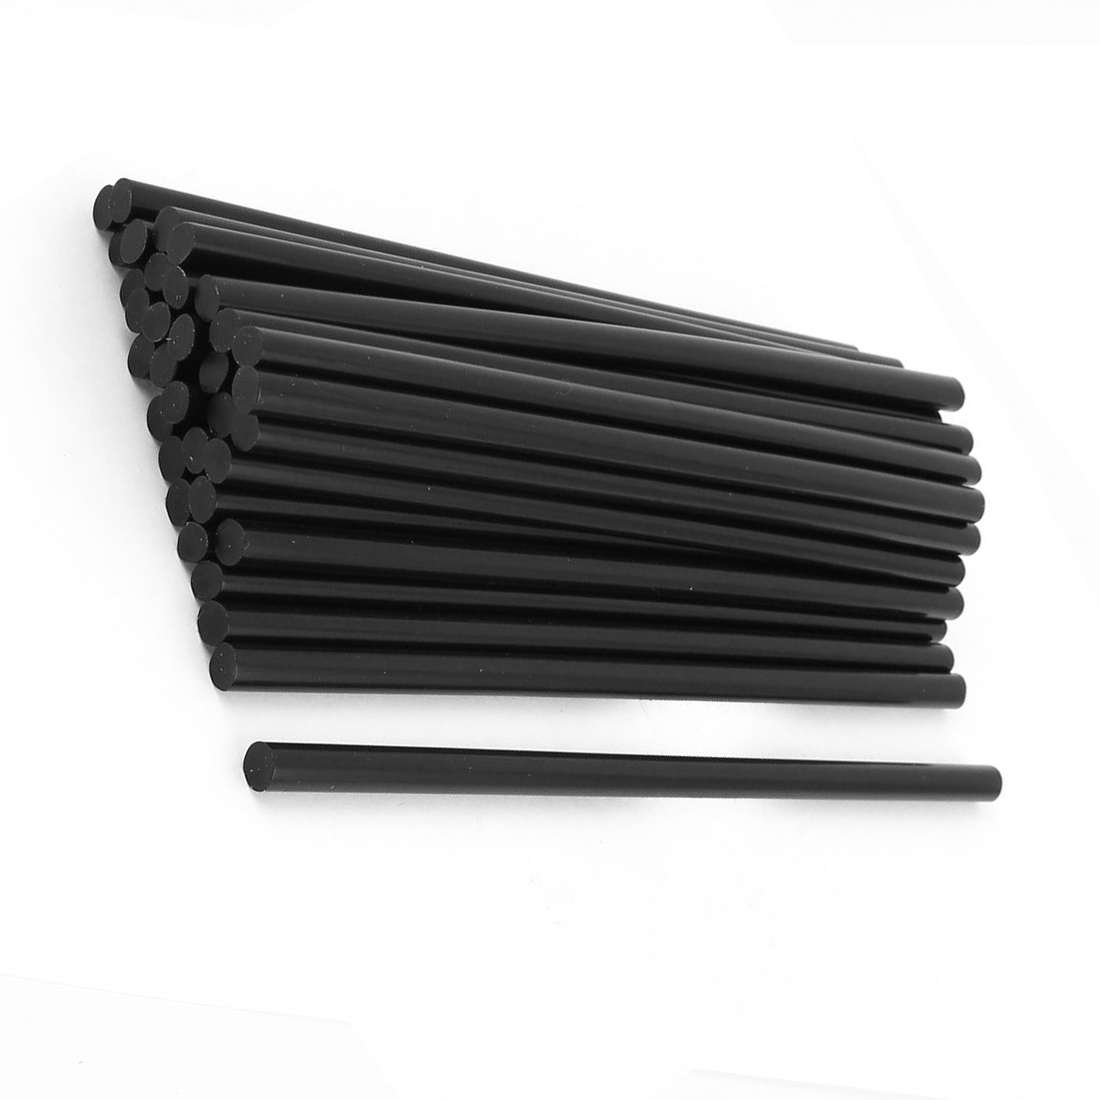 5PACK 35 Pcs 7mm Diameter 190mm Length Plastic Black Hot Melt Glue Stick<br>